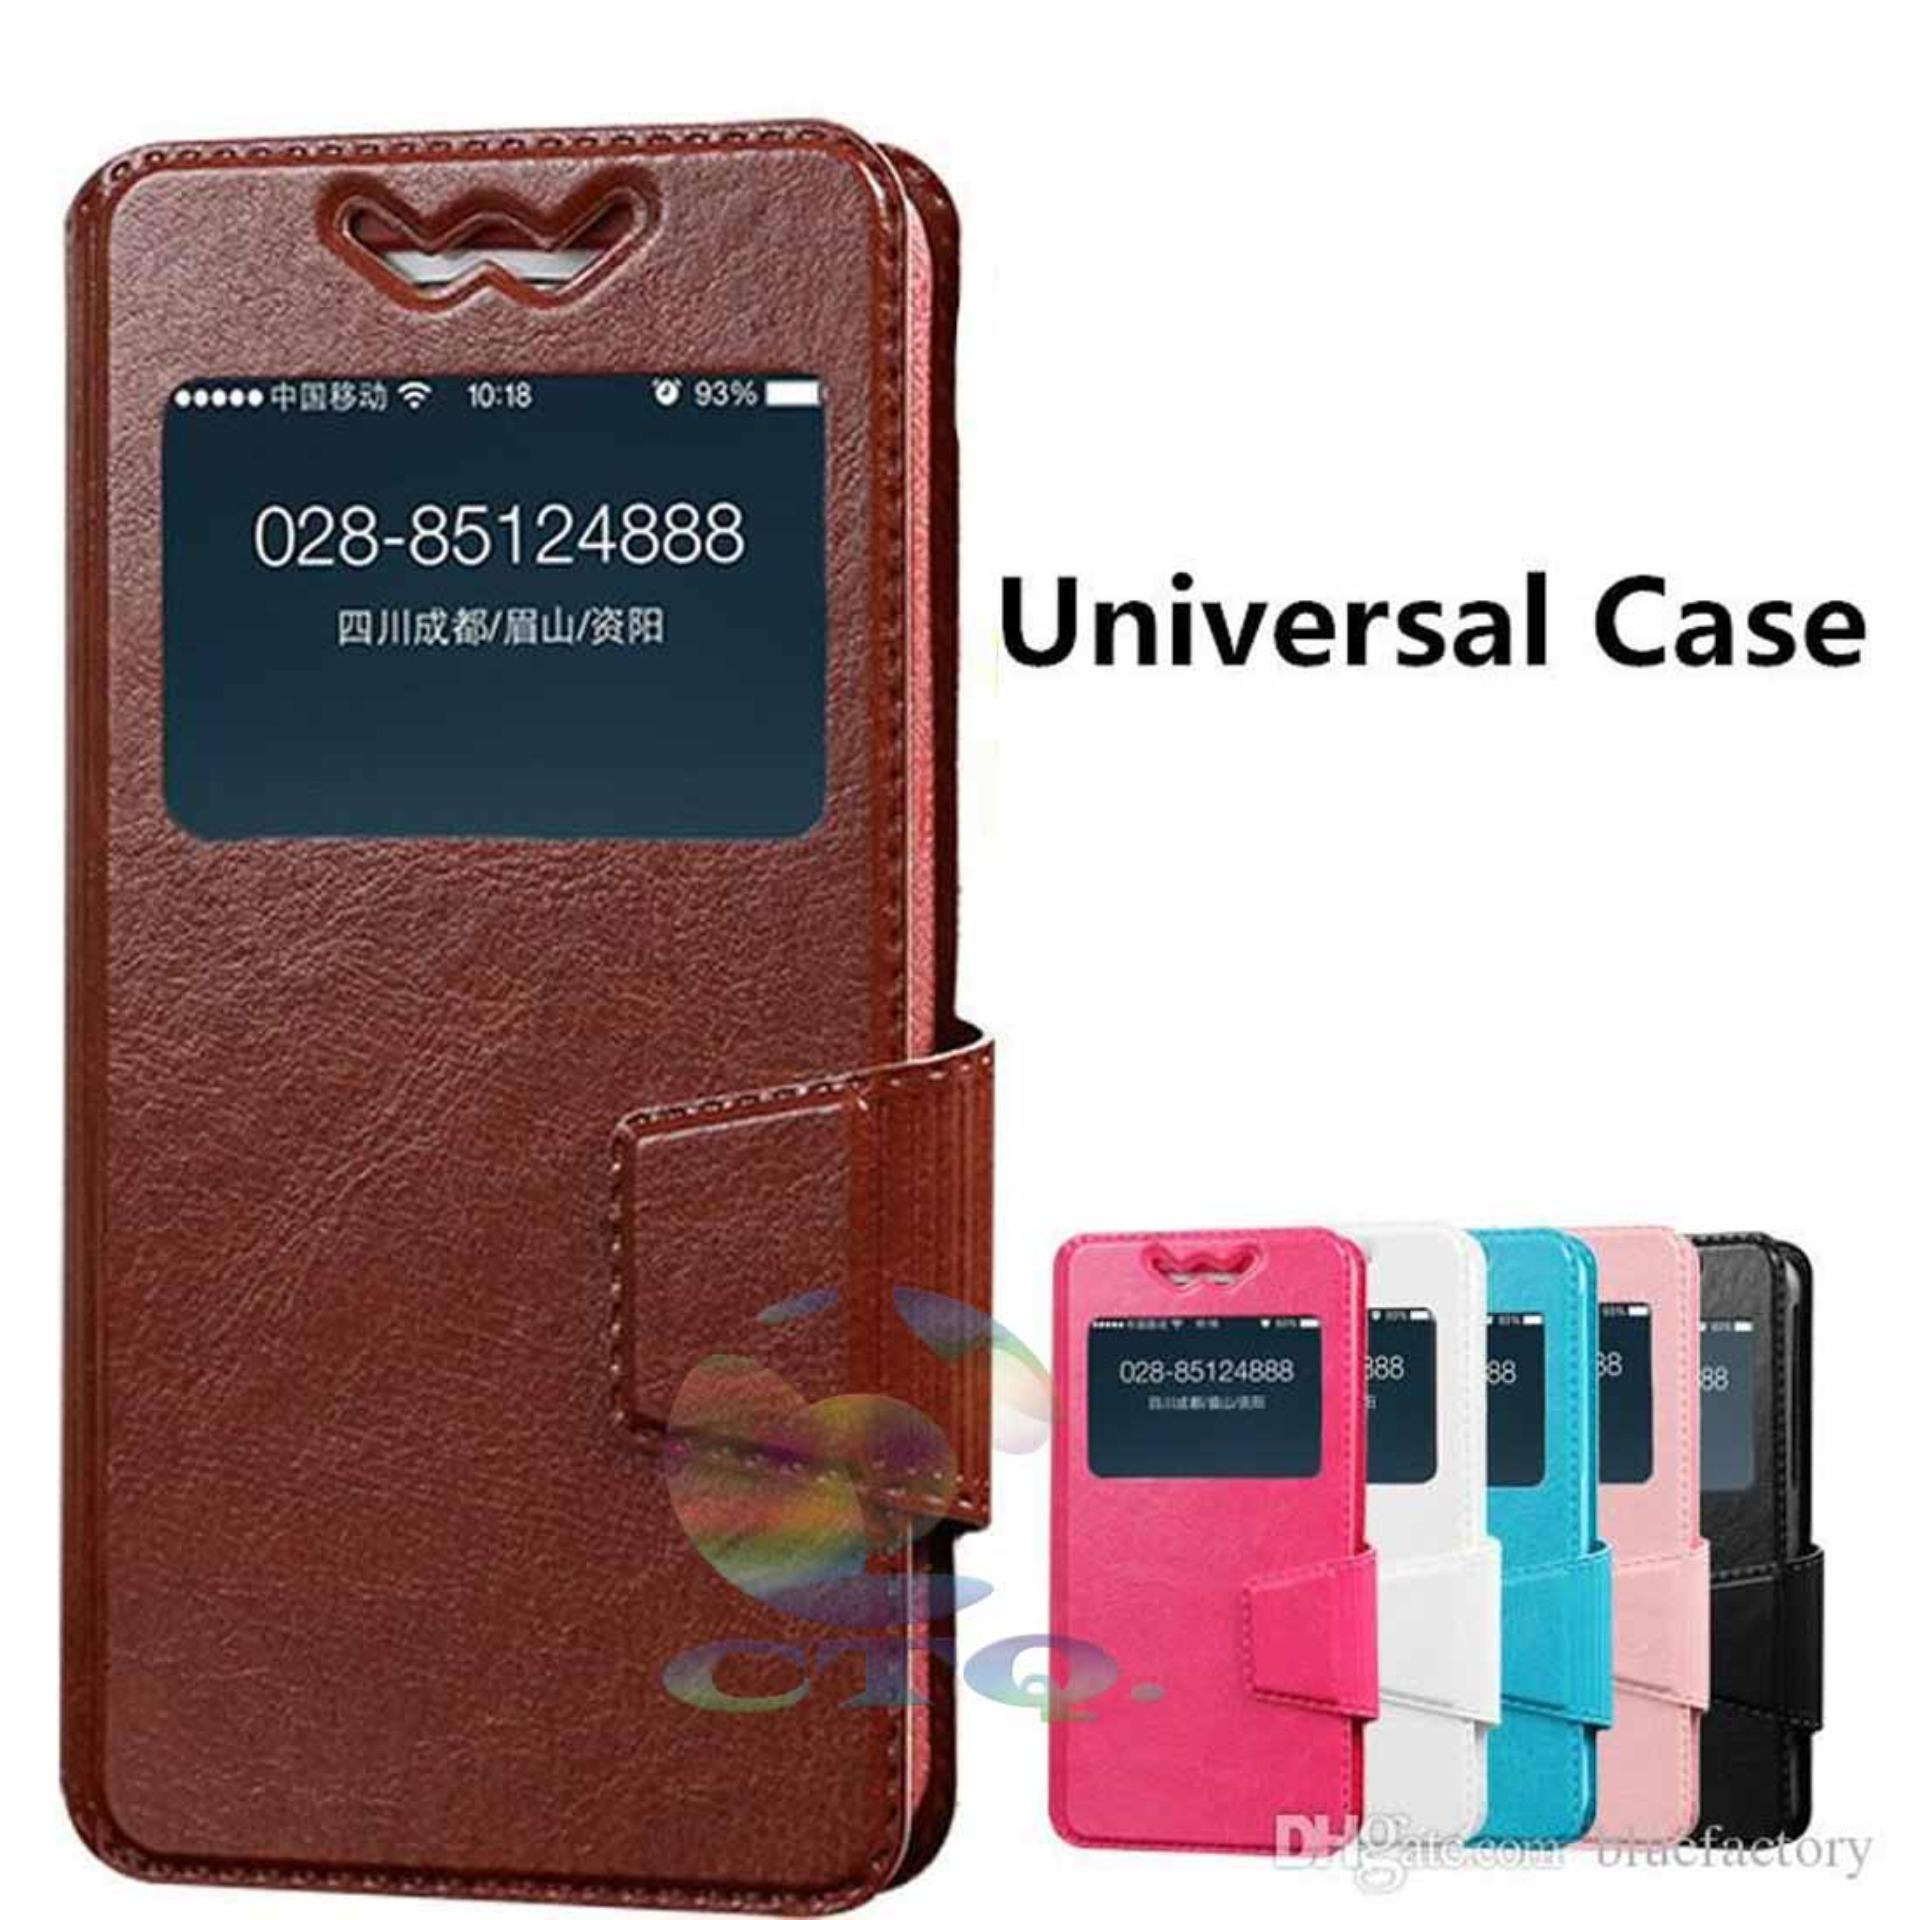 Leather Windows View Case For Hisense Kingkong 2 Smartphone SlideUp Case Universal Flipshell / Universal Flipcover